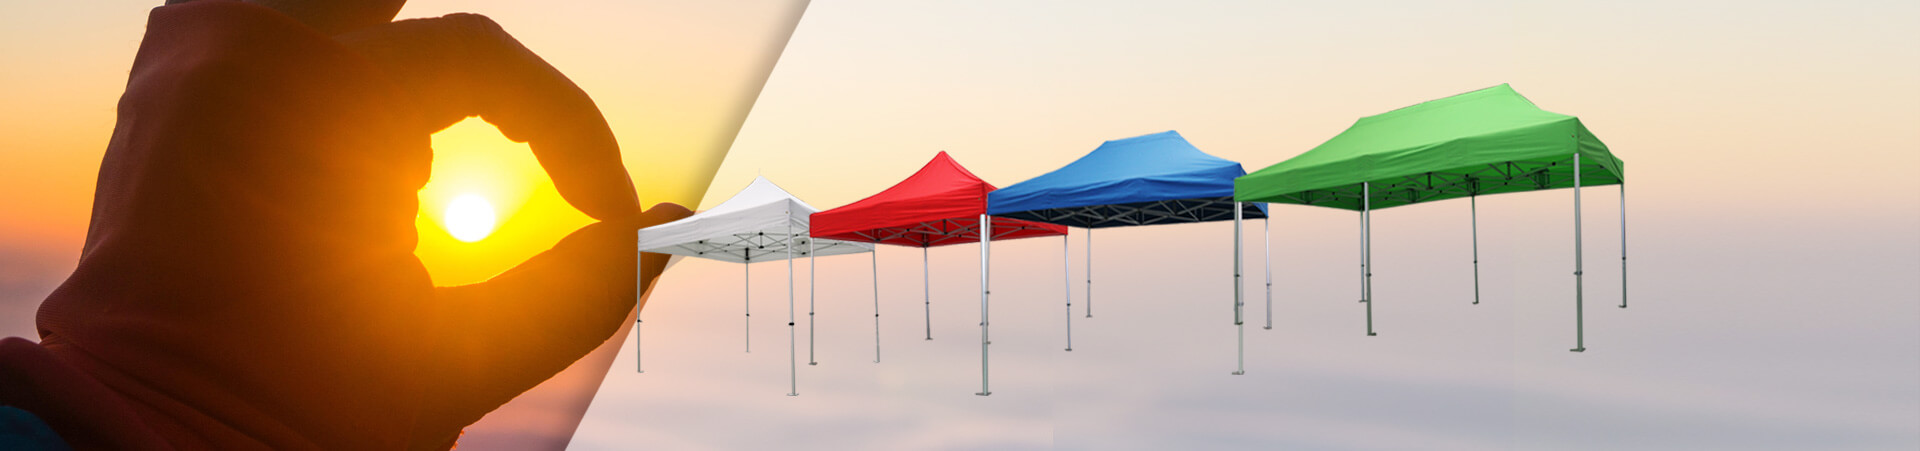 Sentai Outdoor Folding Gazebos